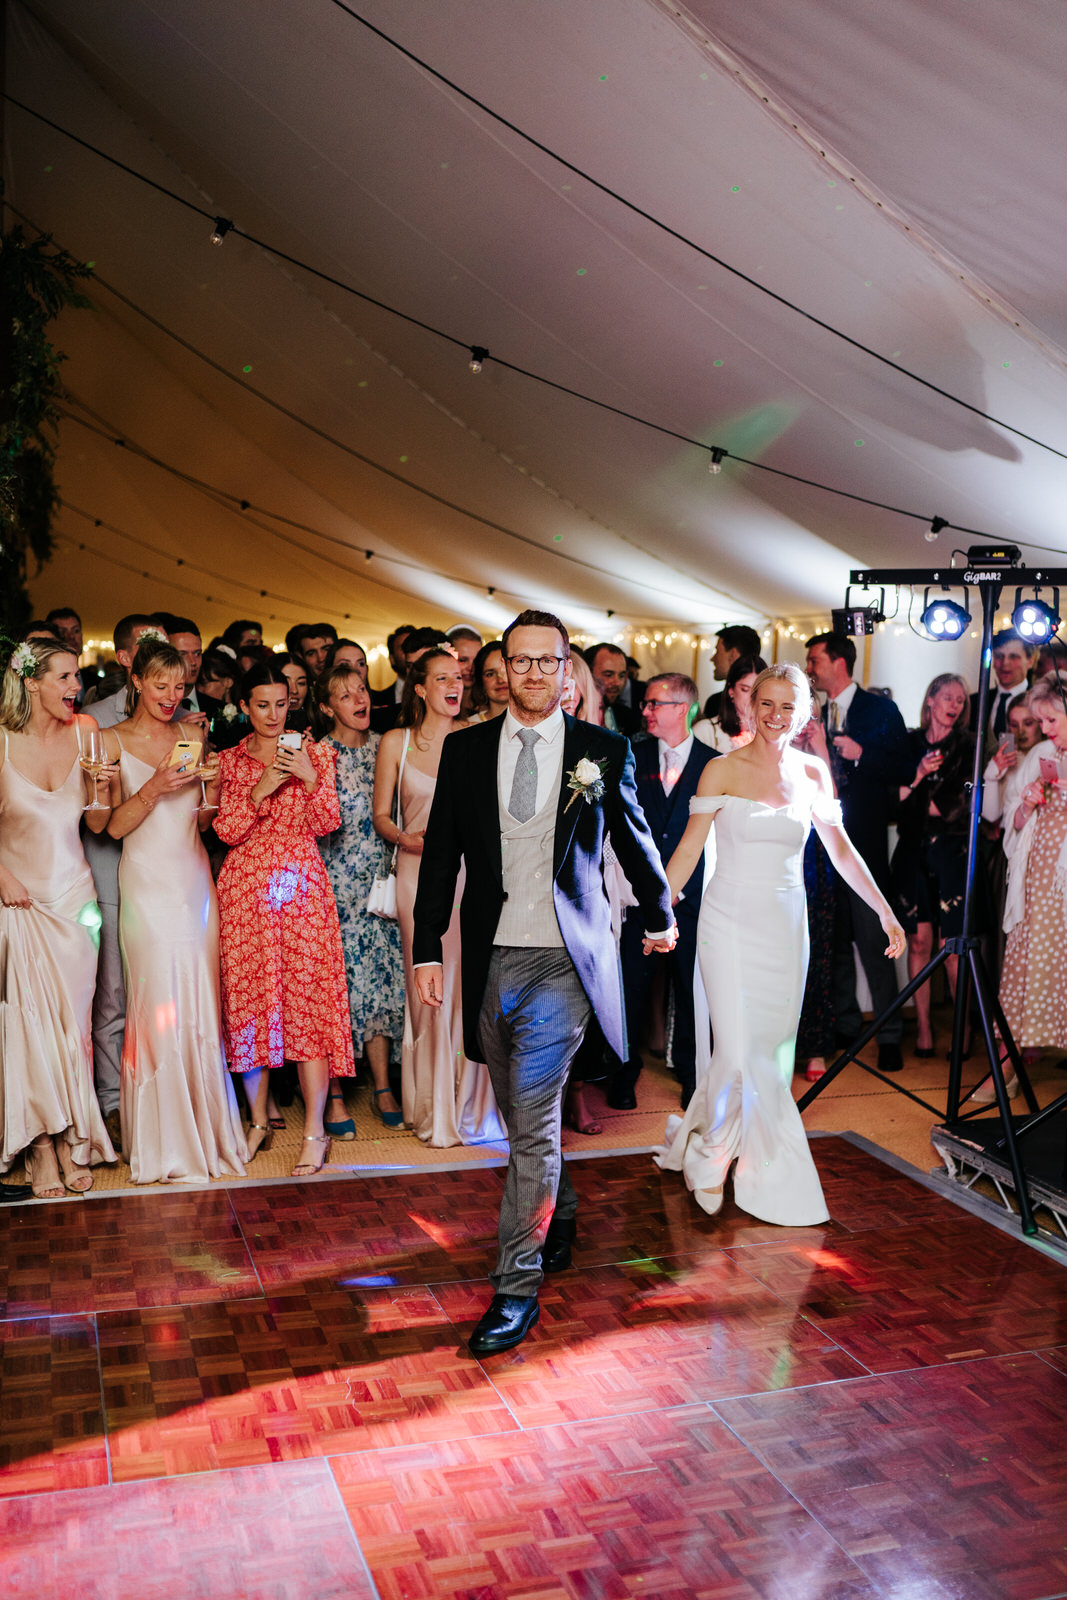 Bride and groom hold hands and walk onto dancefloor to have their first dance